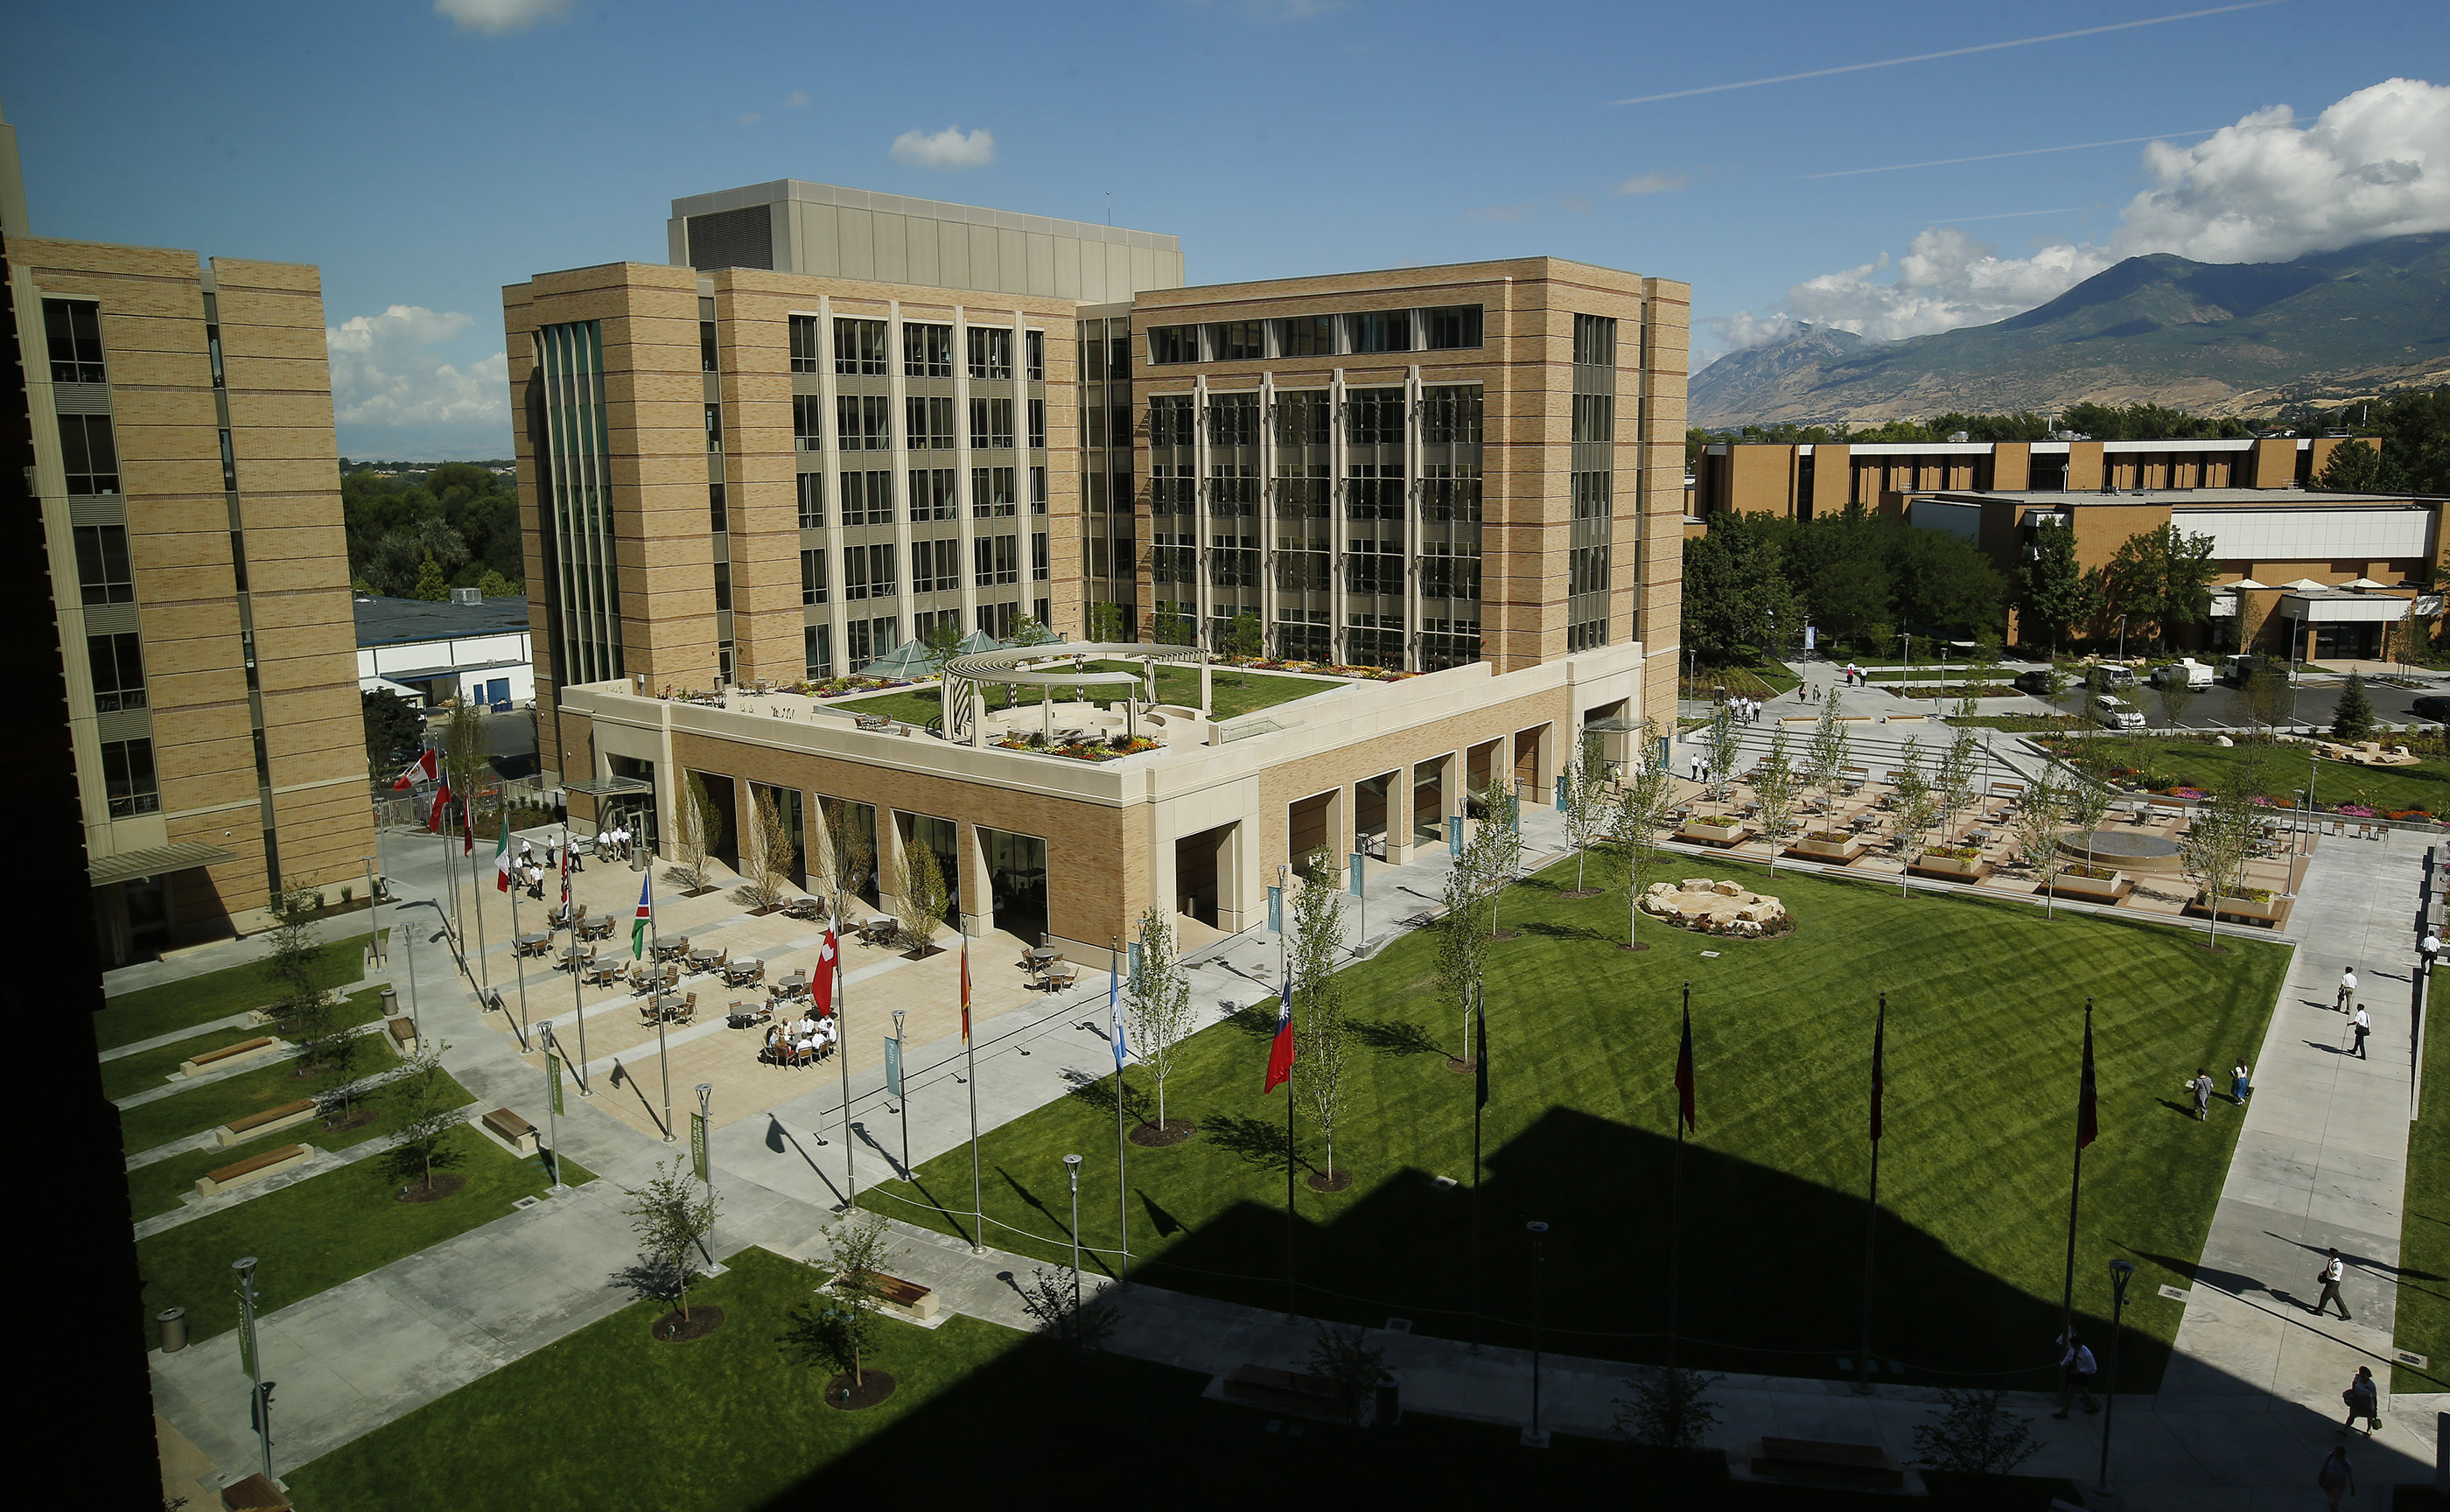 An overhead view from the new T4 training building at the Provo Missionary Training Center show the open spaces — tables, benches, walkways and such — between the T4 and T3 buildings in Provo on Wednesday, July 26, 2017.